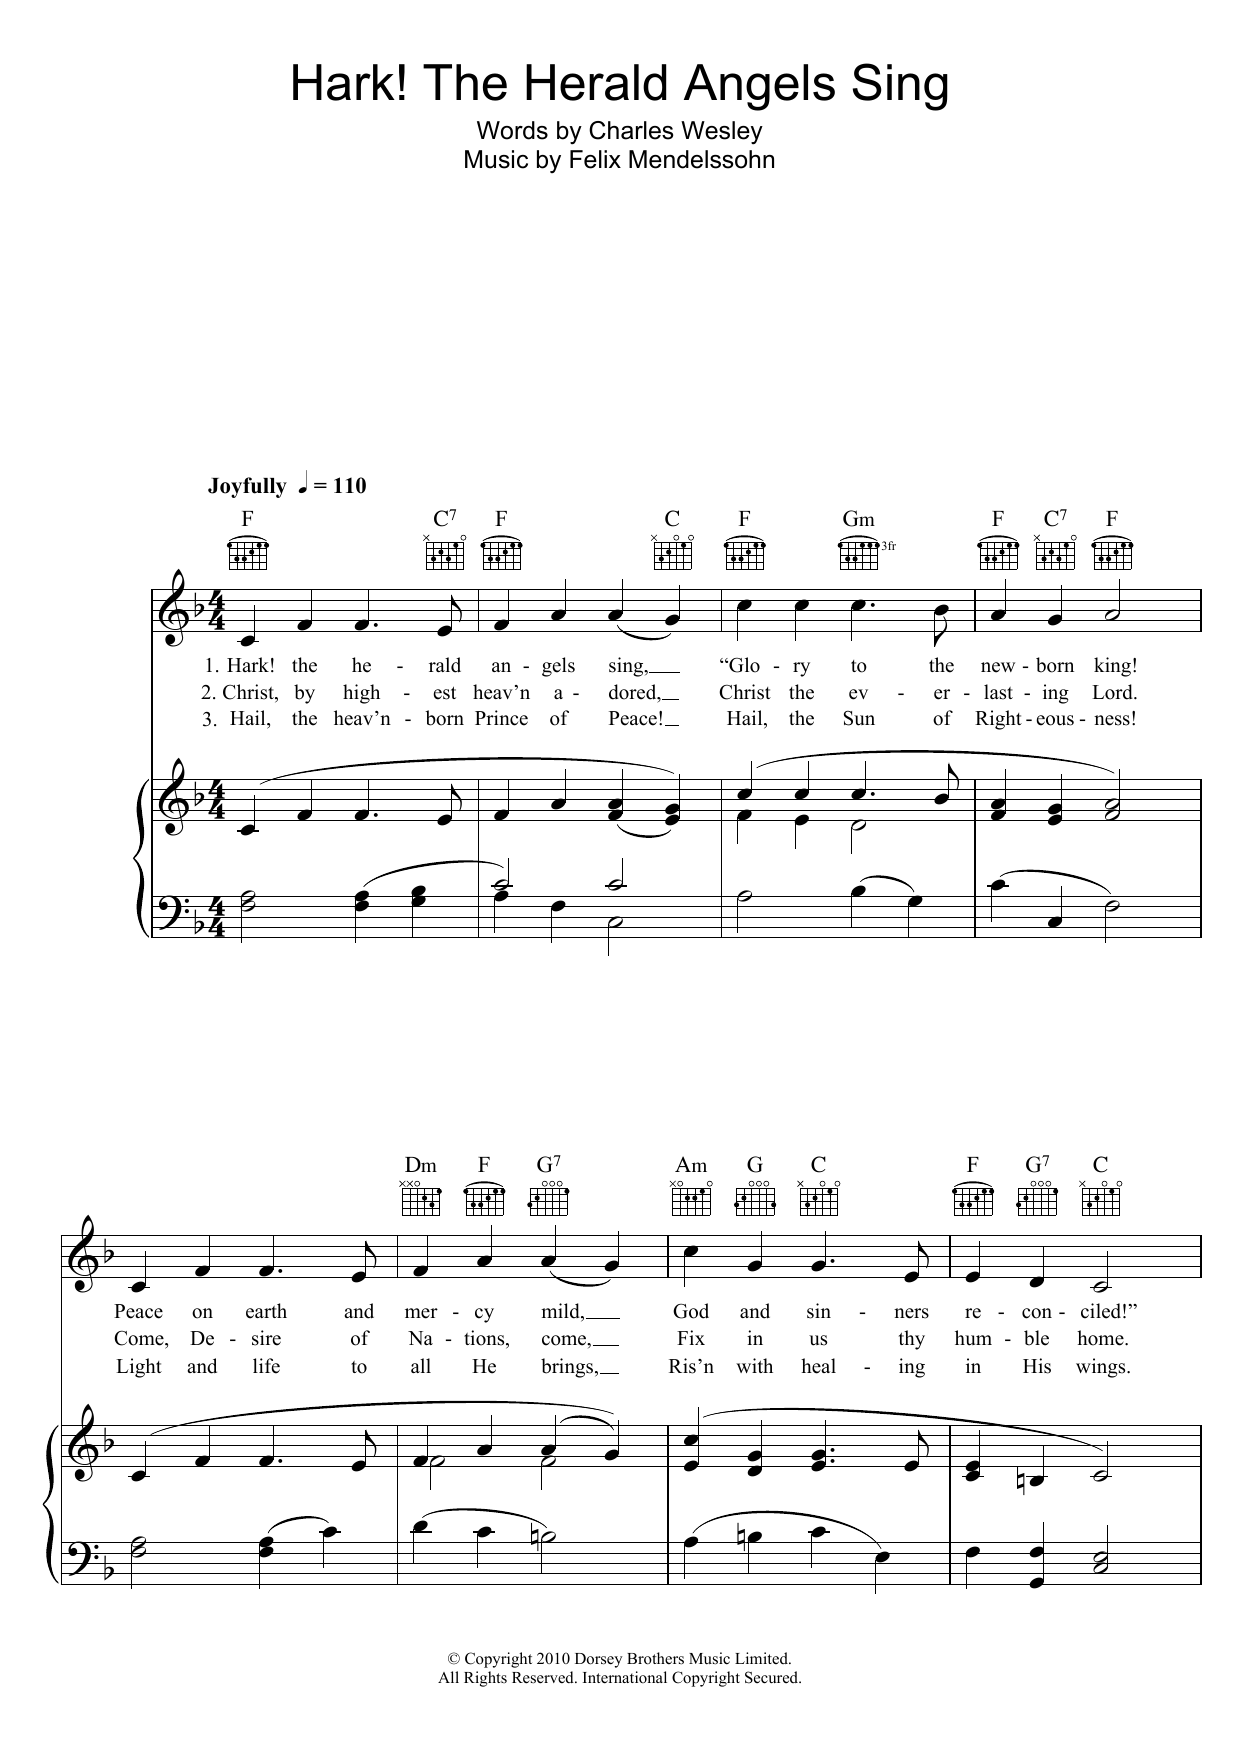 Sheet Music Digital Files To Print Licensed Charles Wesley Digital